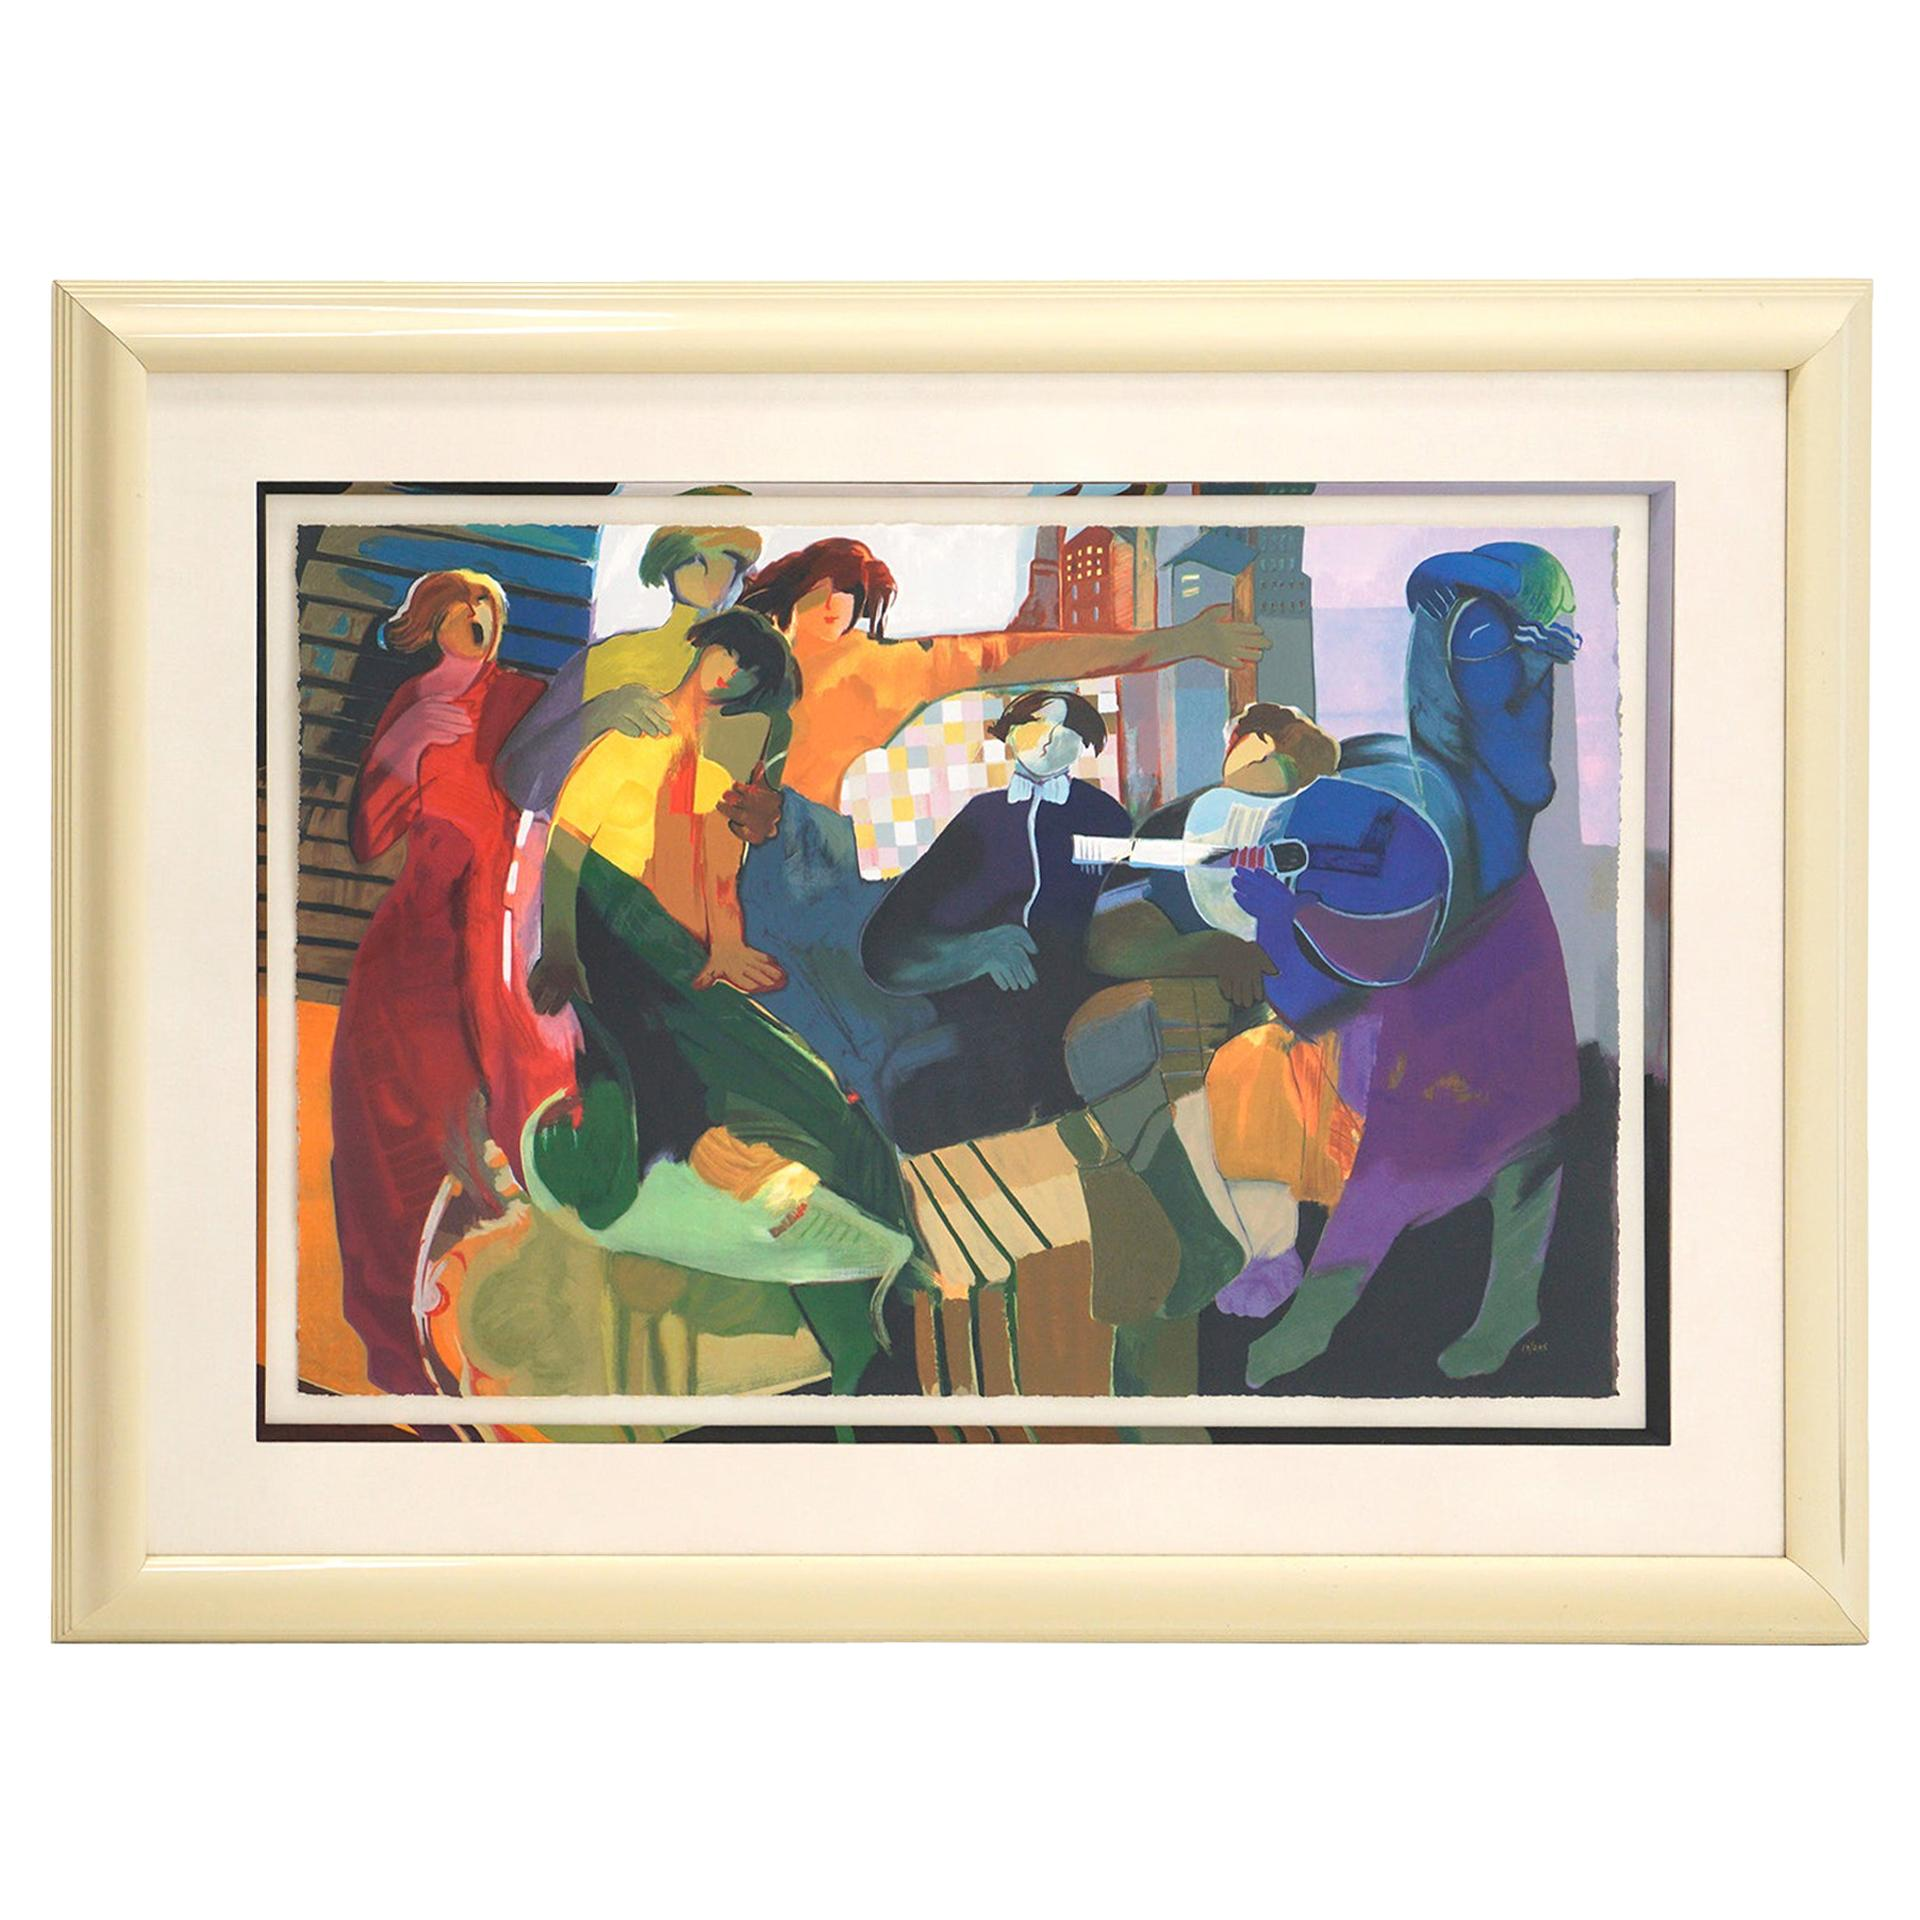 Large Lithograph by Hessam Abrishami, Framed, Numbered, and Signed